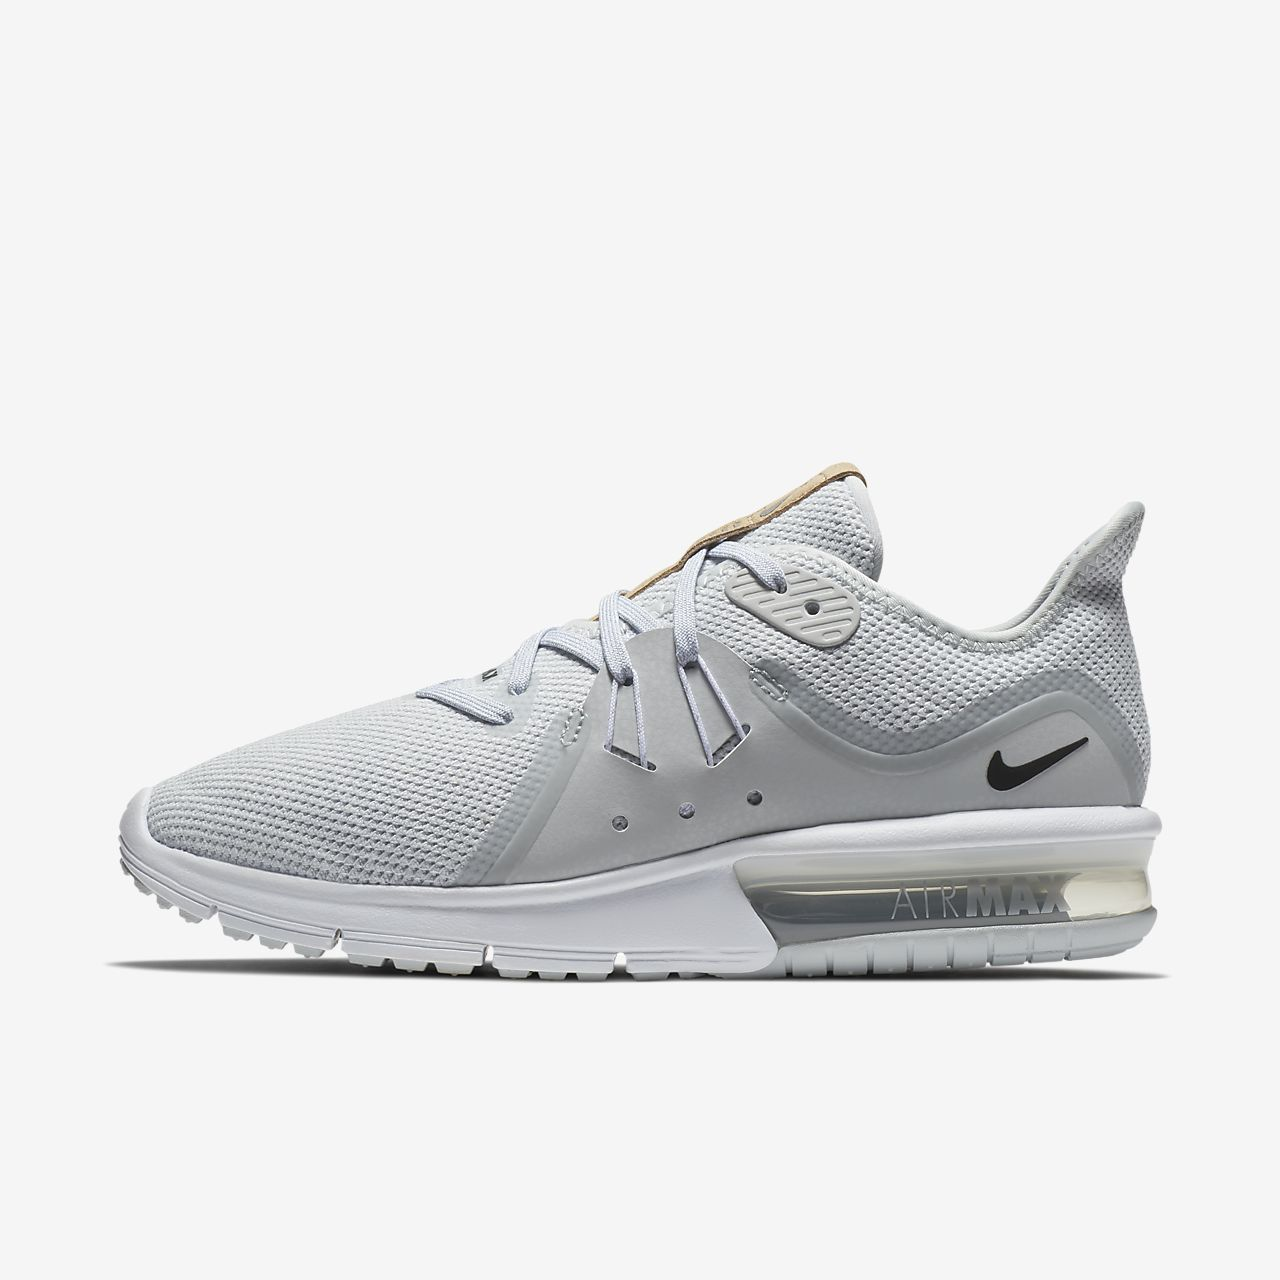 5f228da7107 Nike Air Max Sequent 3 Women s Shoe. Nike.com